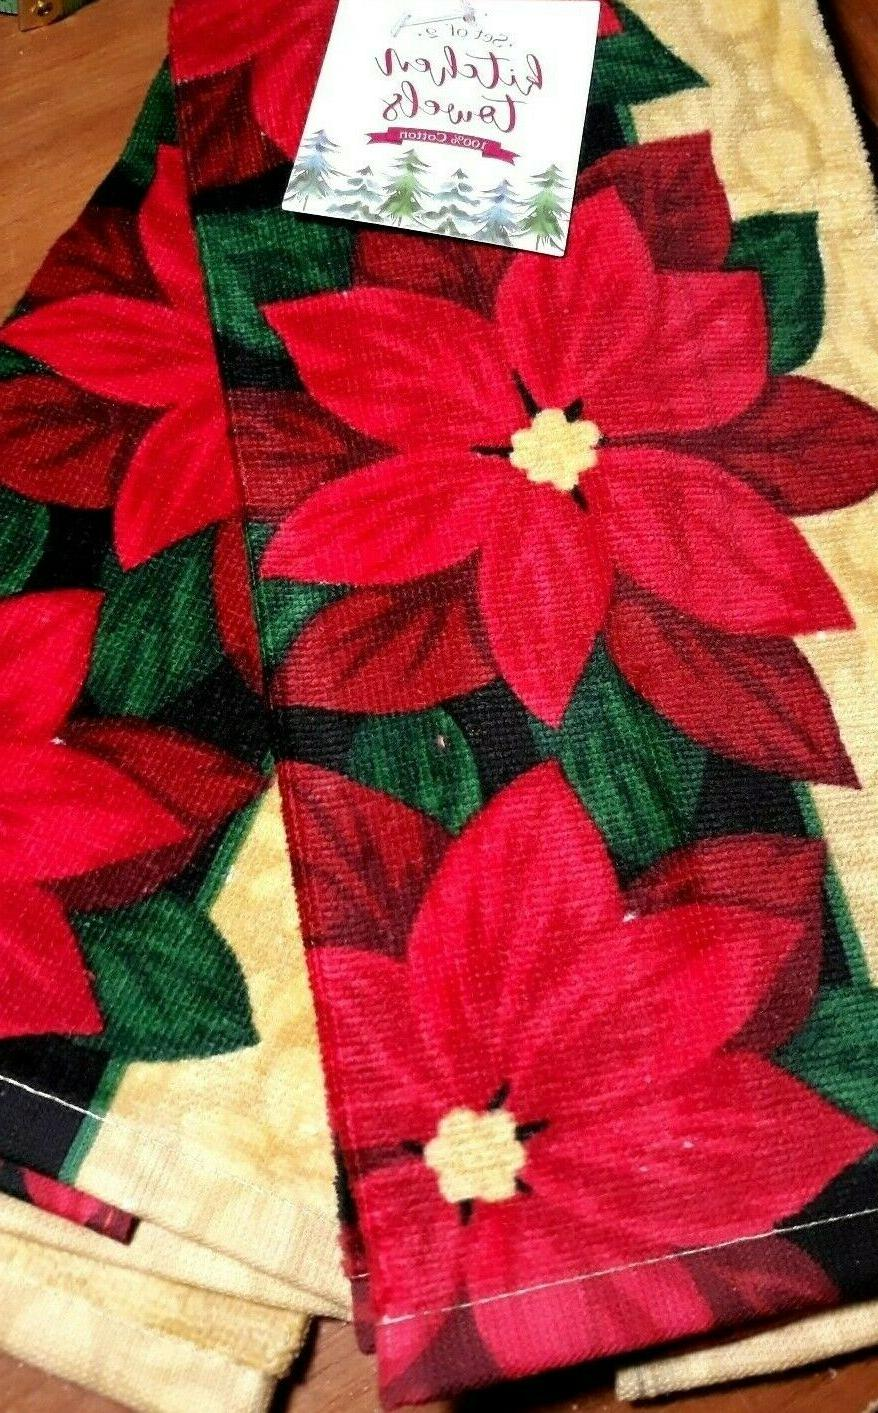 Kitchen hand dish Towels Set of Poinsettia towels